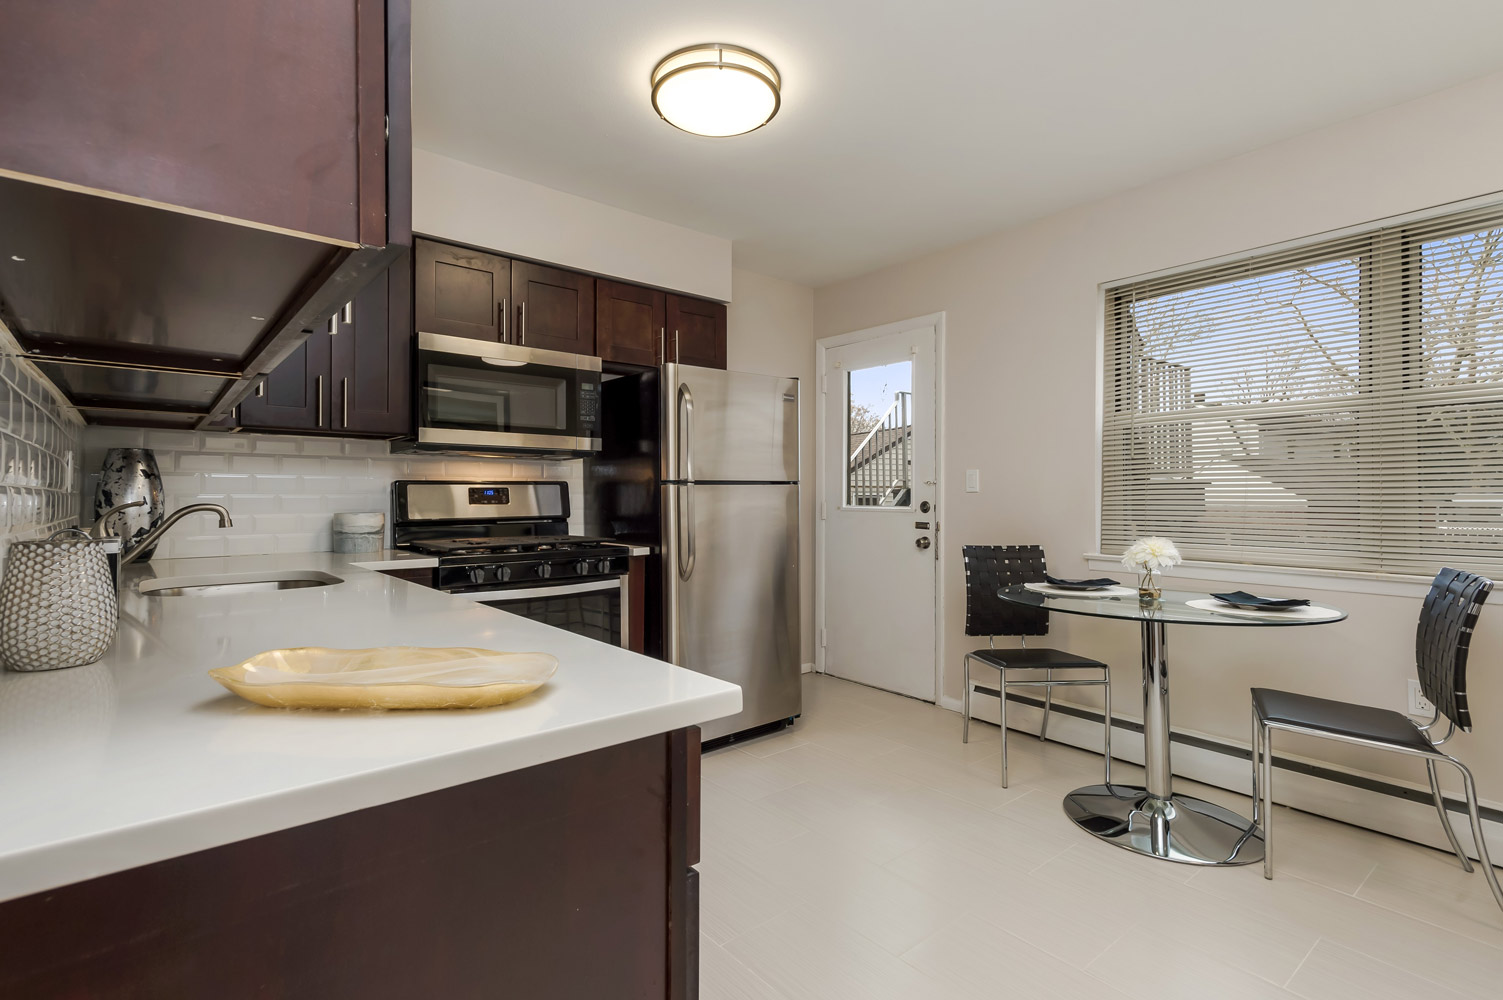 Kitchen with Dining Area at Grandview Gardens Apartments in Edison, New Jersey